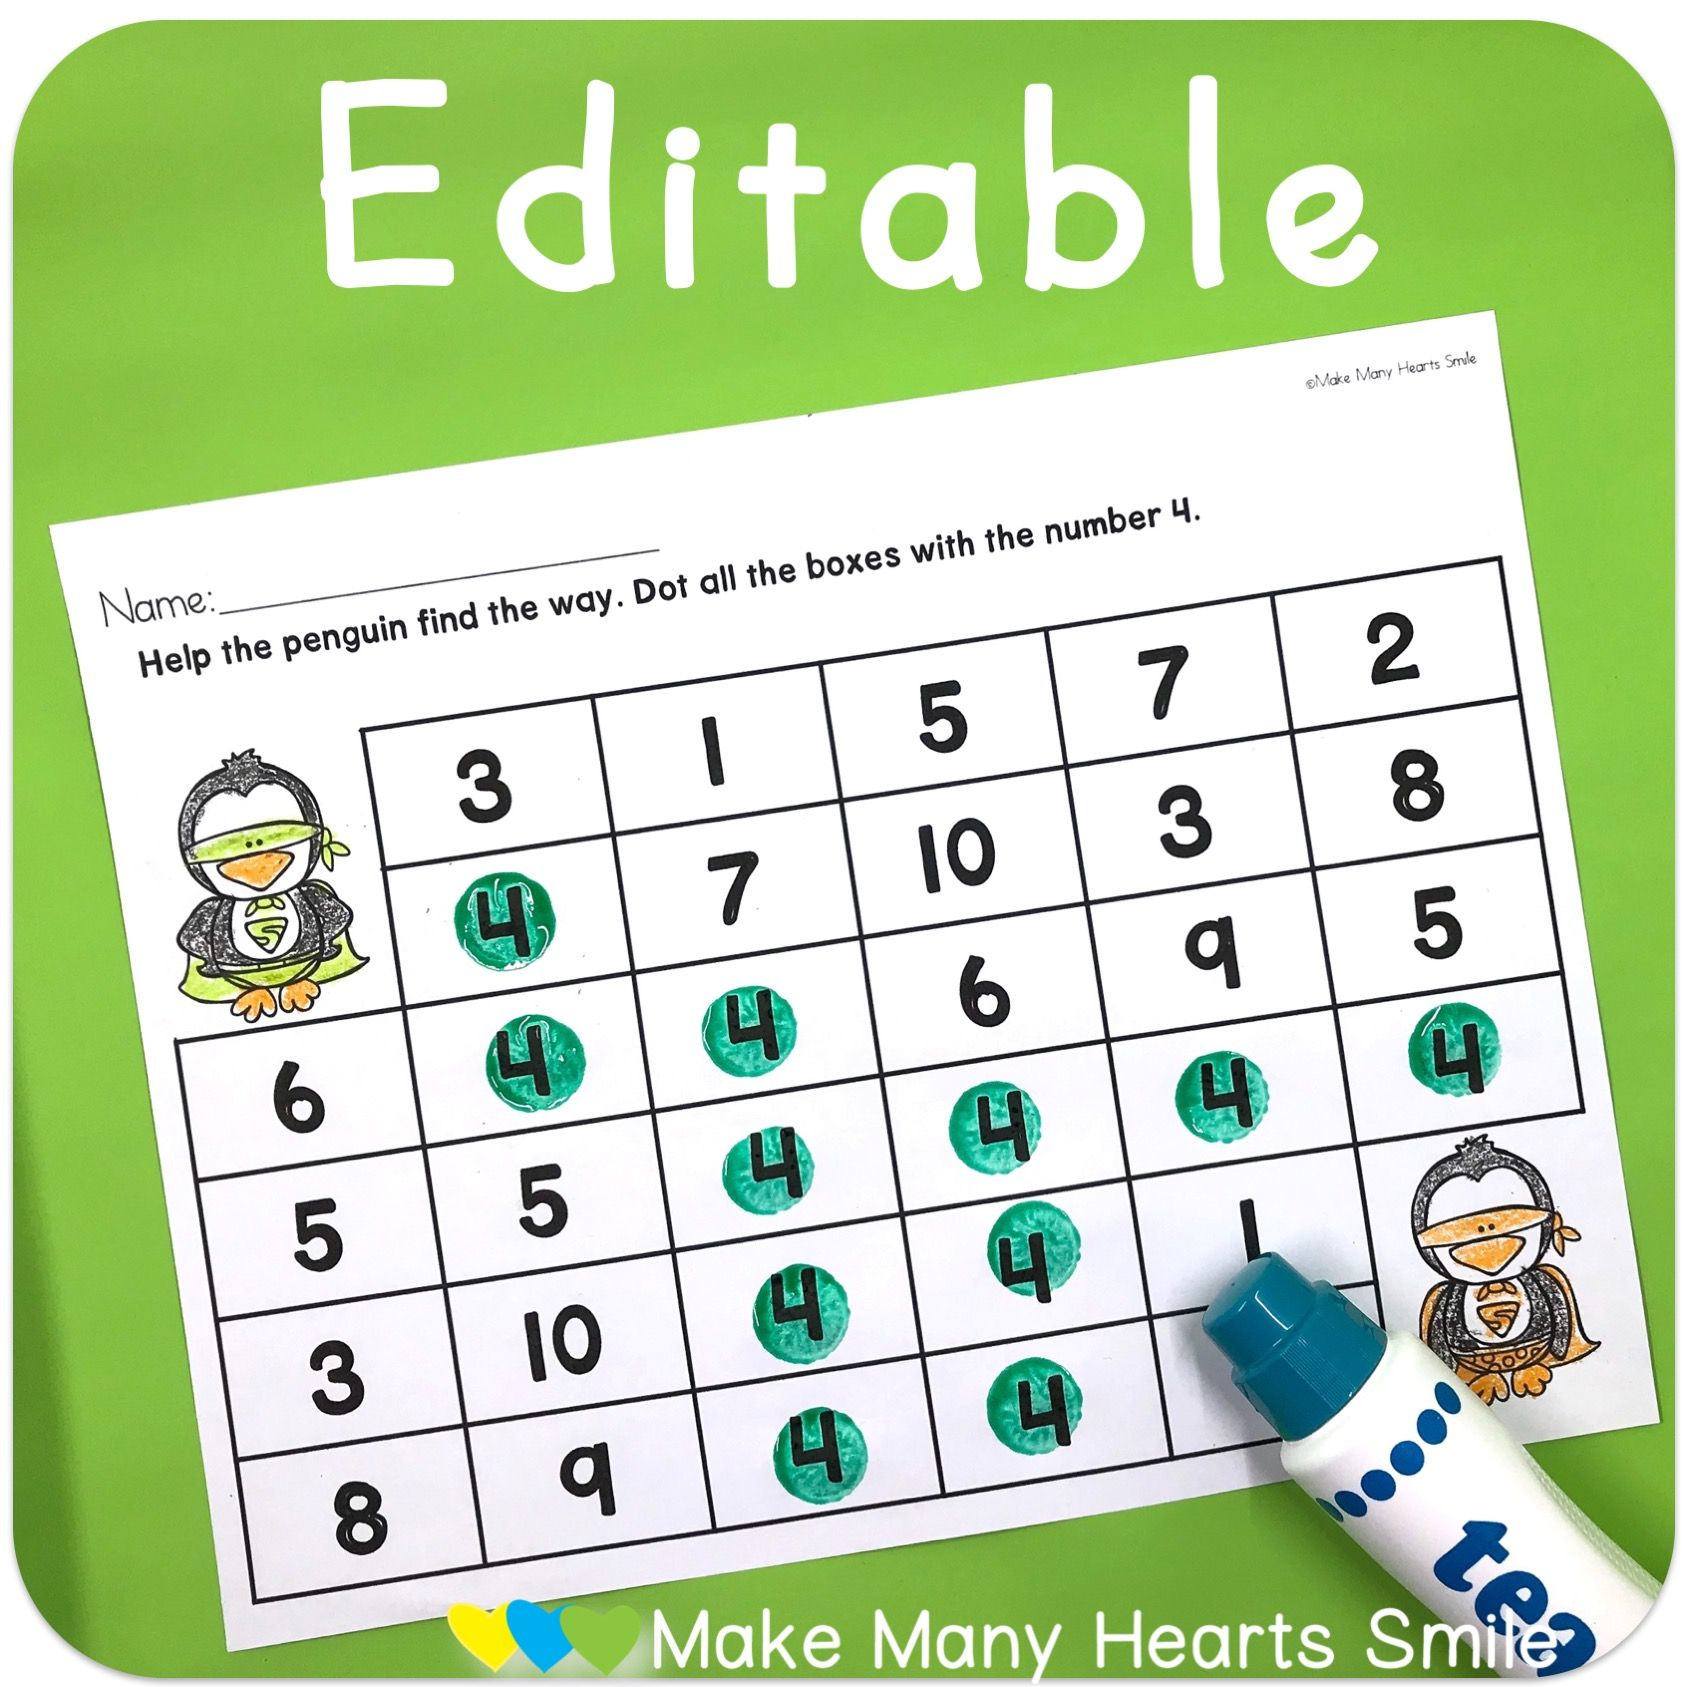 Editable Worksheets To Practice Letters Numbers And Sight